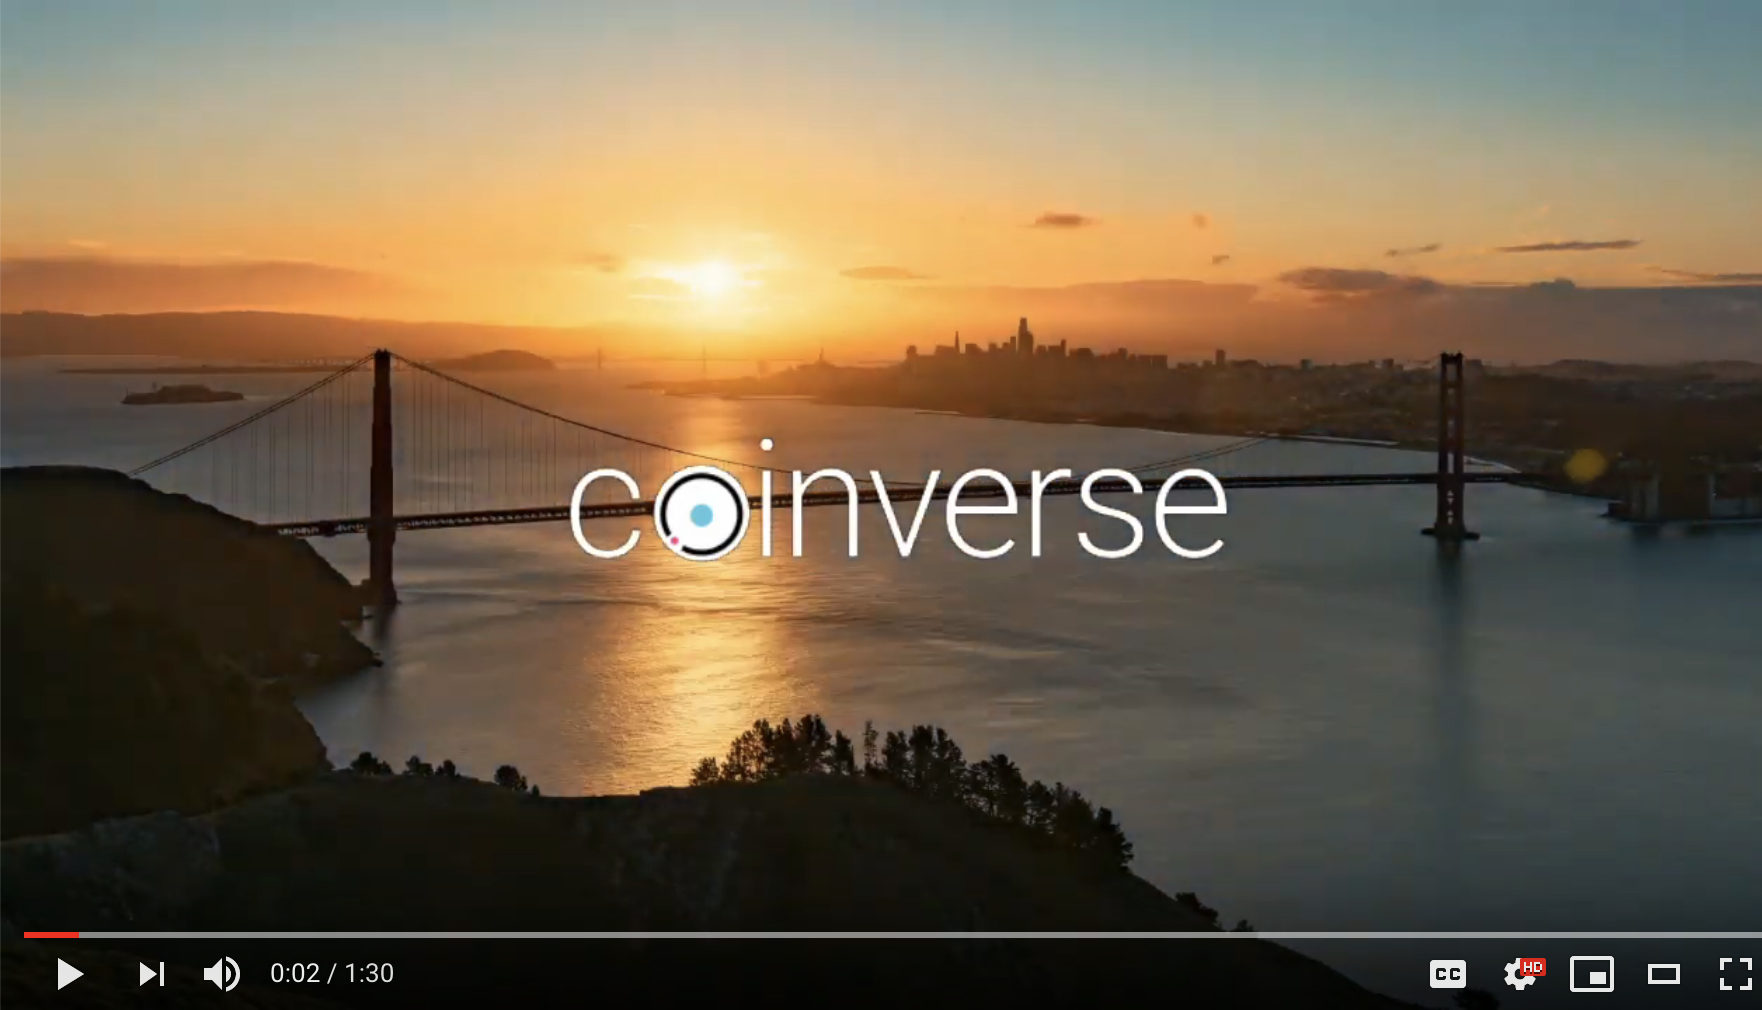 Coinverse YouTube video